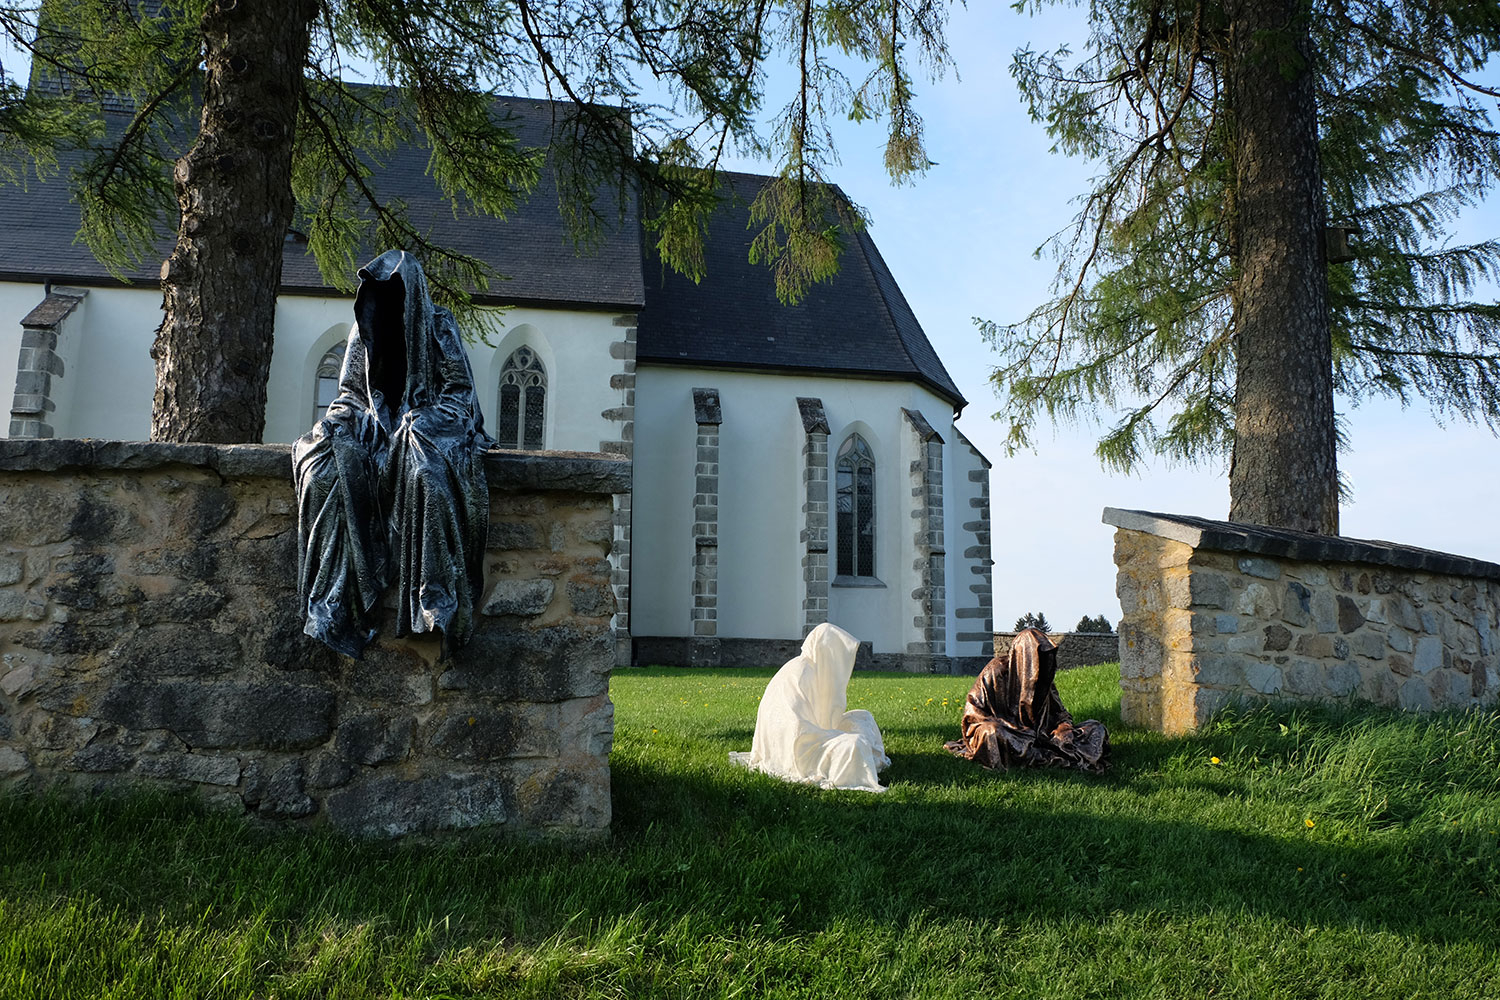 guardians-of-time-manfred-kili-kielnhofer-contemporary-fine-art-design-sculpture-antique-religion-chirch-gotic-2612